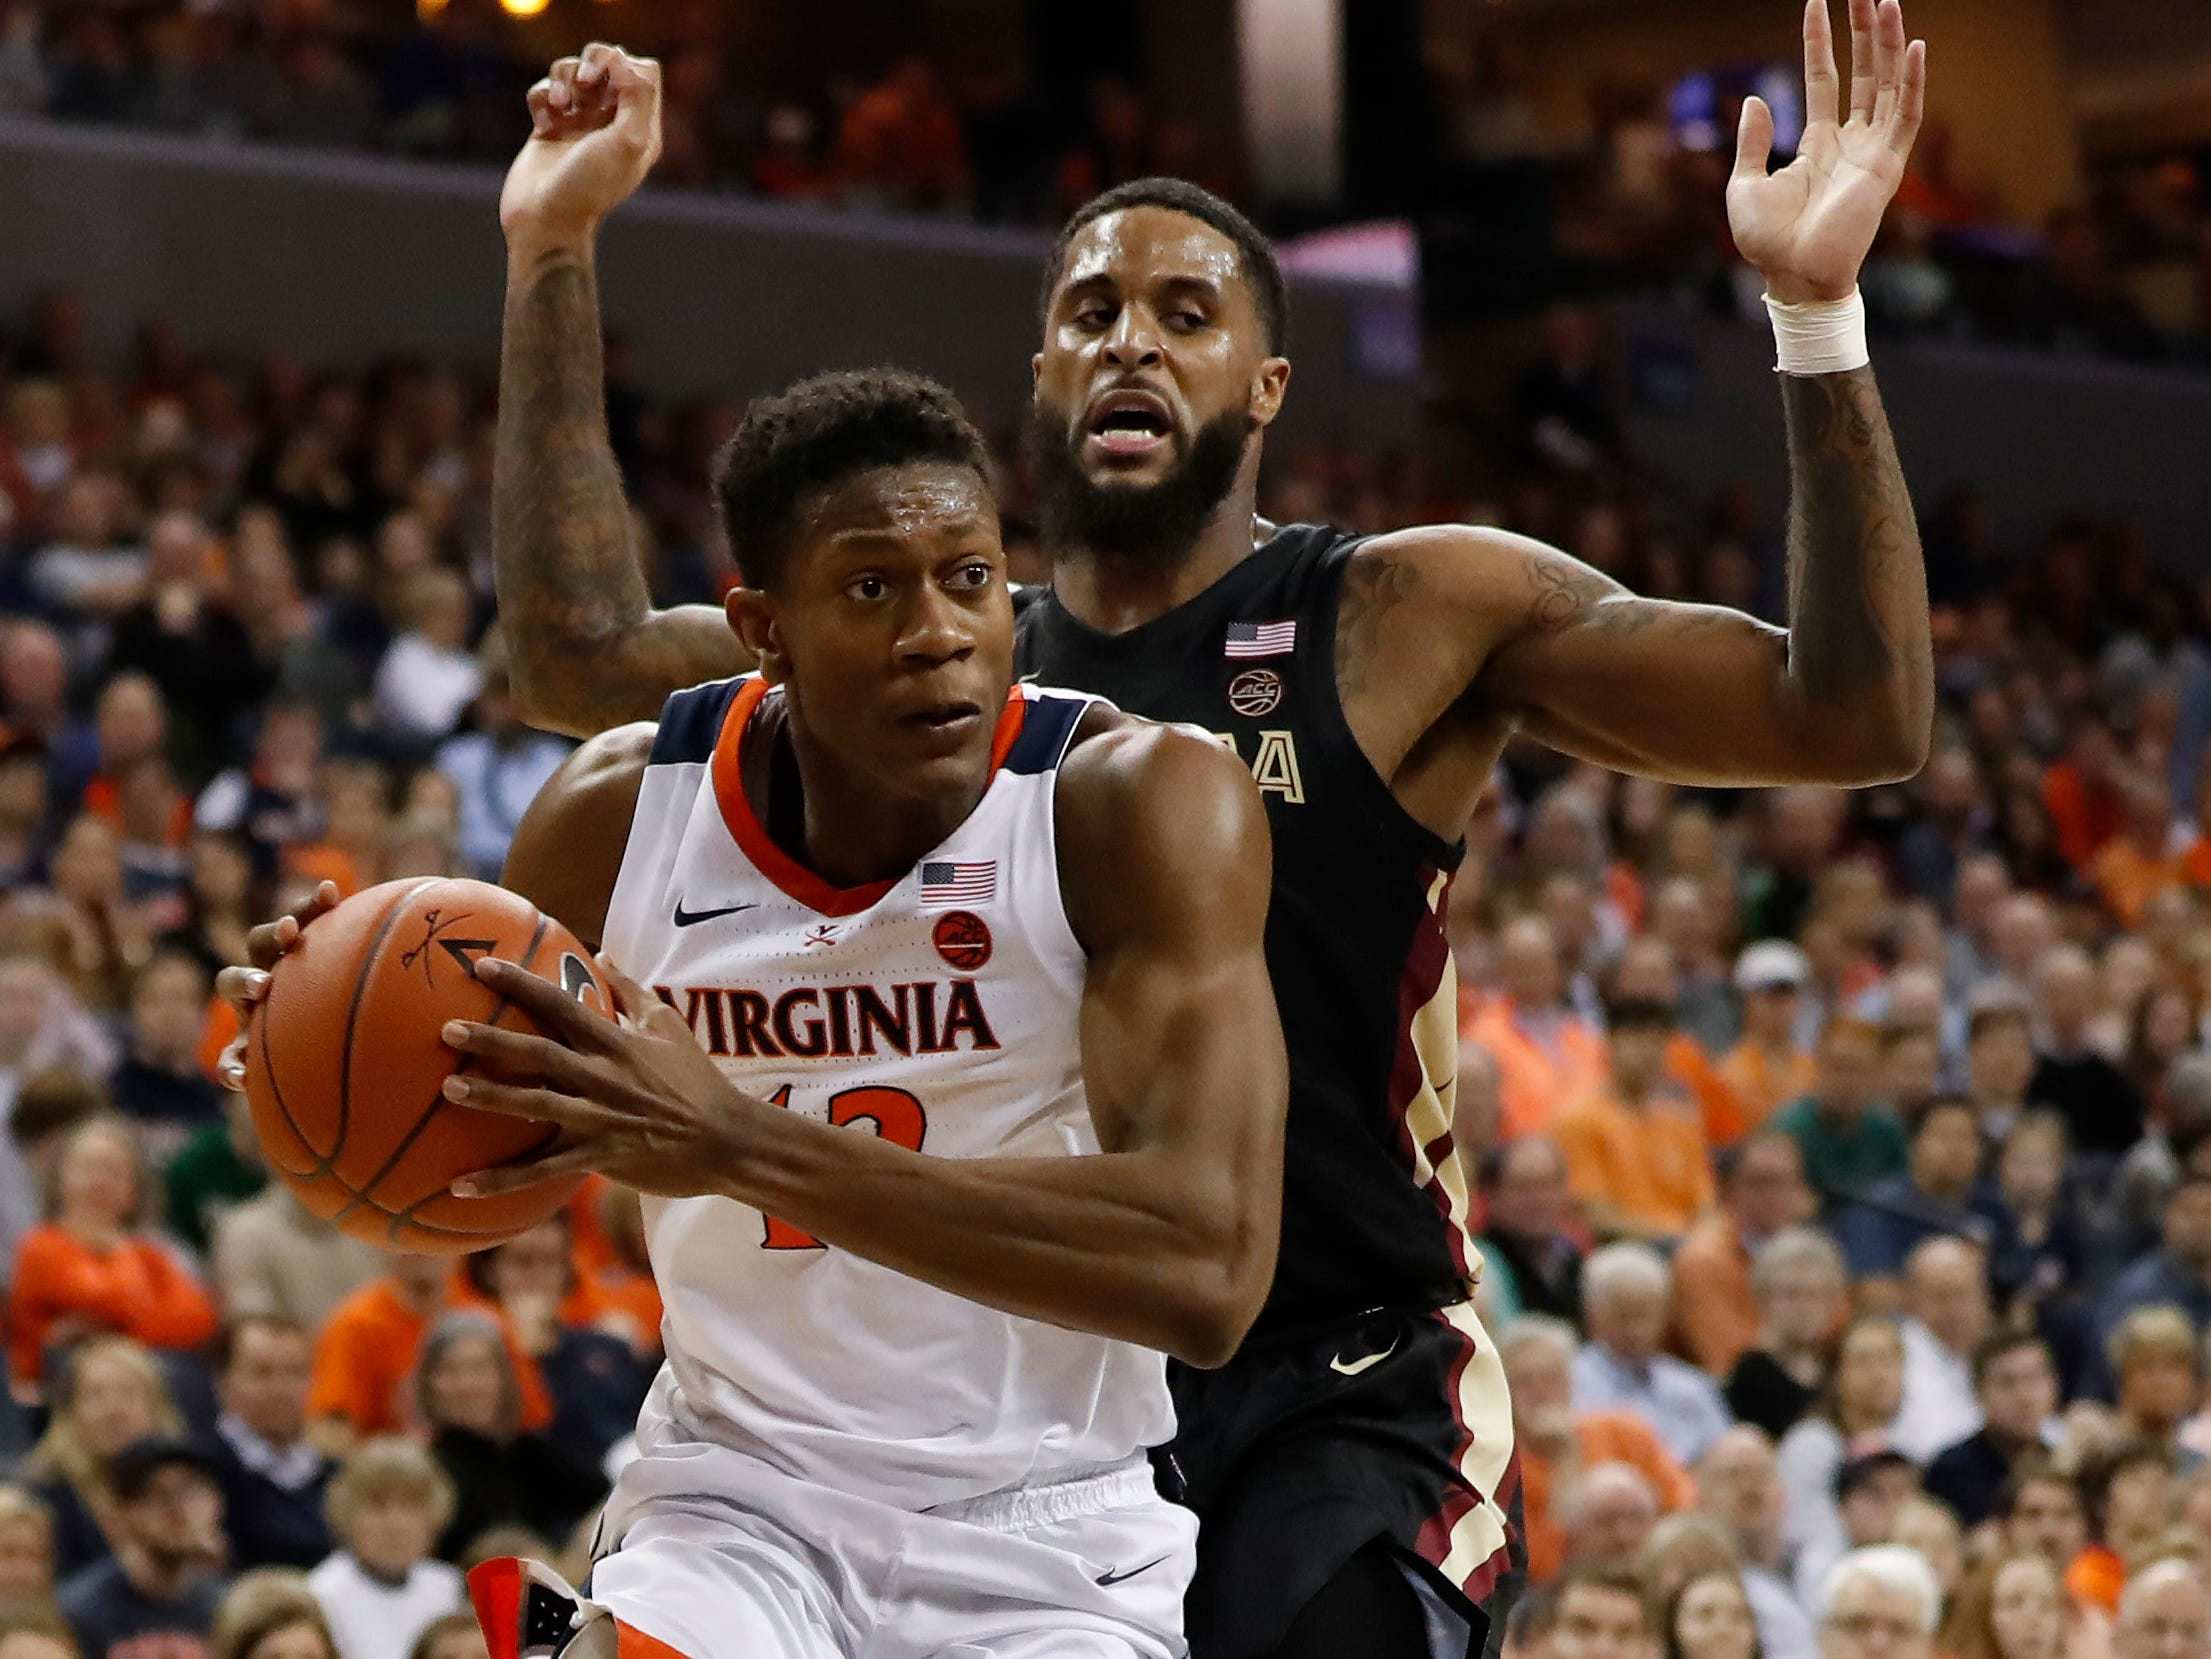 Jan 5, 2019; Charlottesville, VA, USA; Virginia Cavaliers guard De'Andre Hunter (12) drives to the basket past Florida State Seminoles forward Phil Cofer (0) in the second half at John Paul Jones Arena. Mandatory Credit: Geoff Burke-USA TODAY Sports